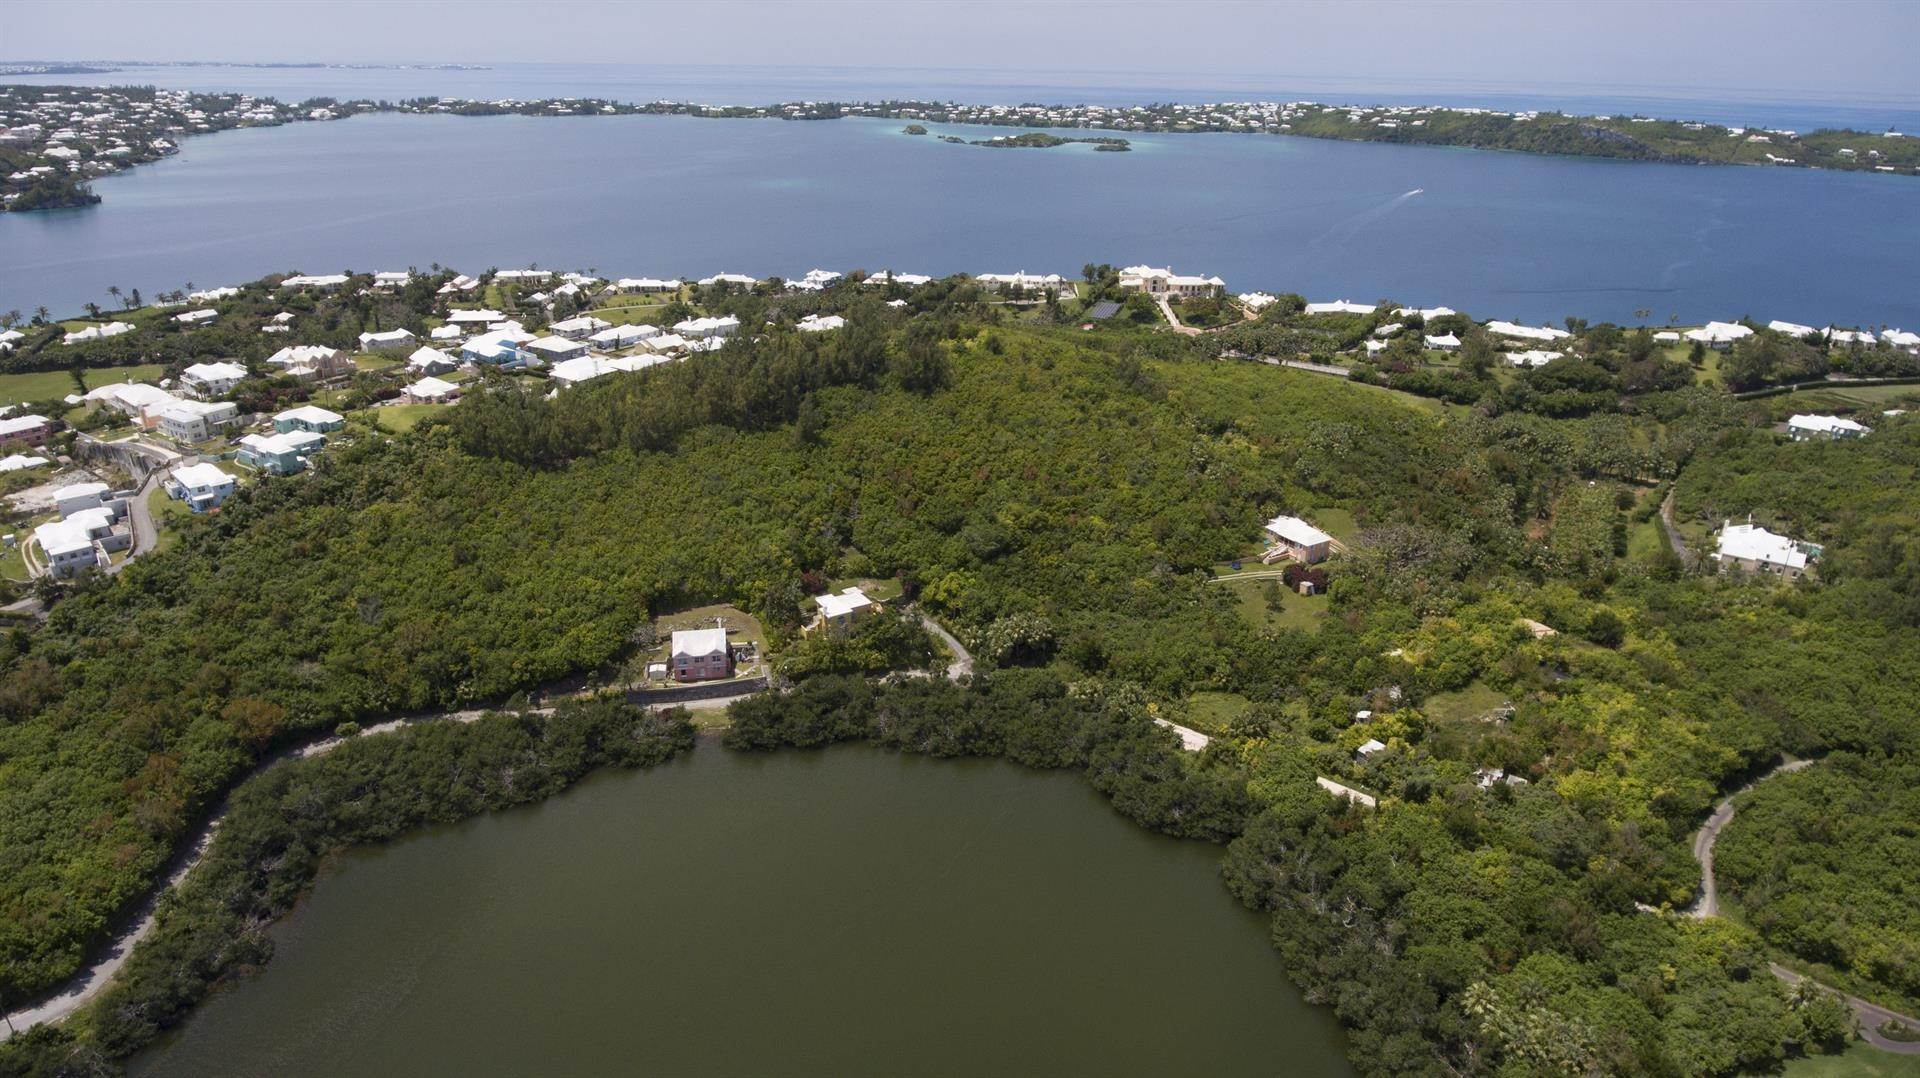 Gods för Försäljning vid North Estate: Old Quarry & North Farm North Estate: Old Quarry & North Farm, 126 Harrington Sound Road,Bermuda – Sinclair Realty